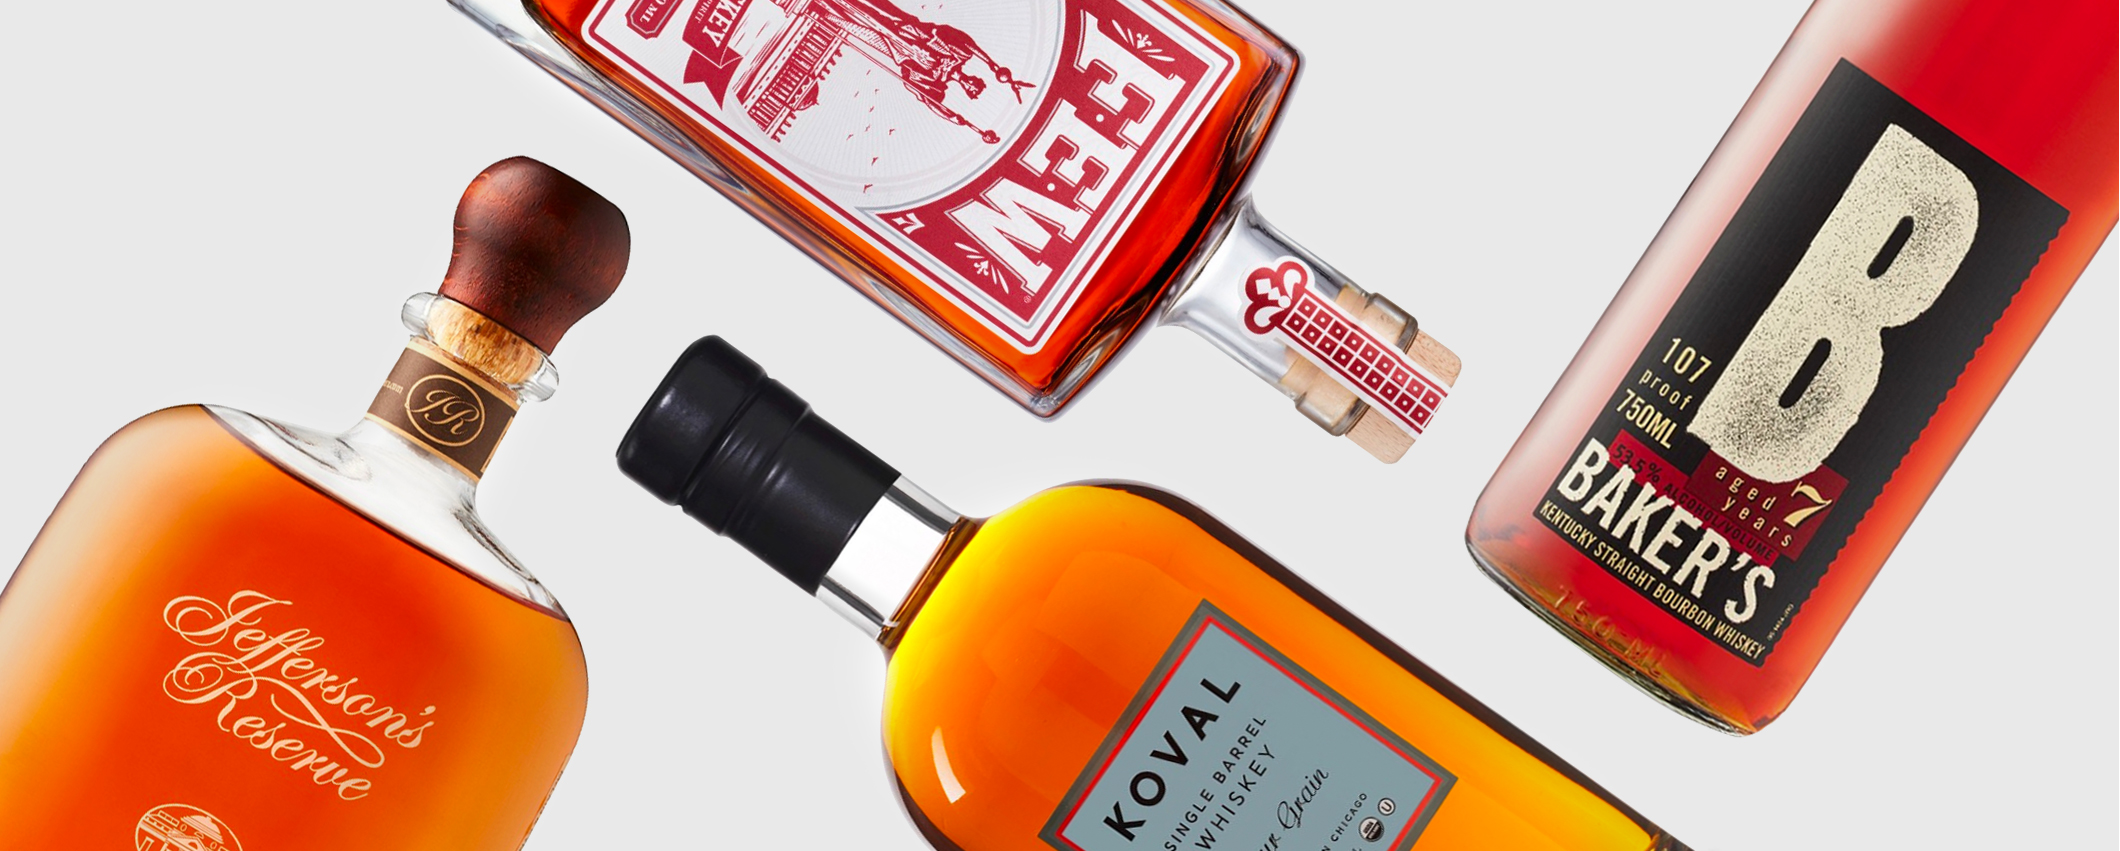 American Whiskey: Coast to Coast